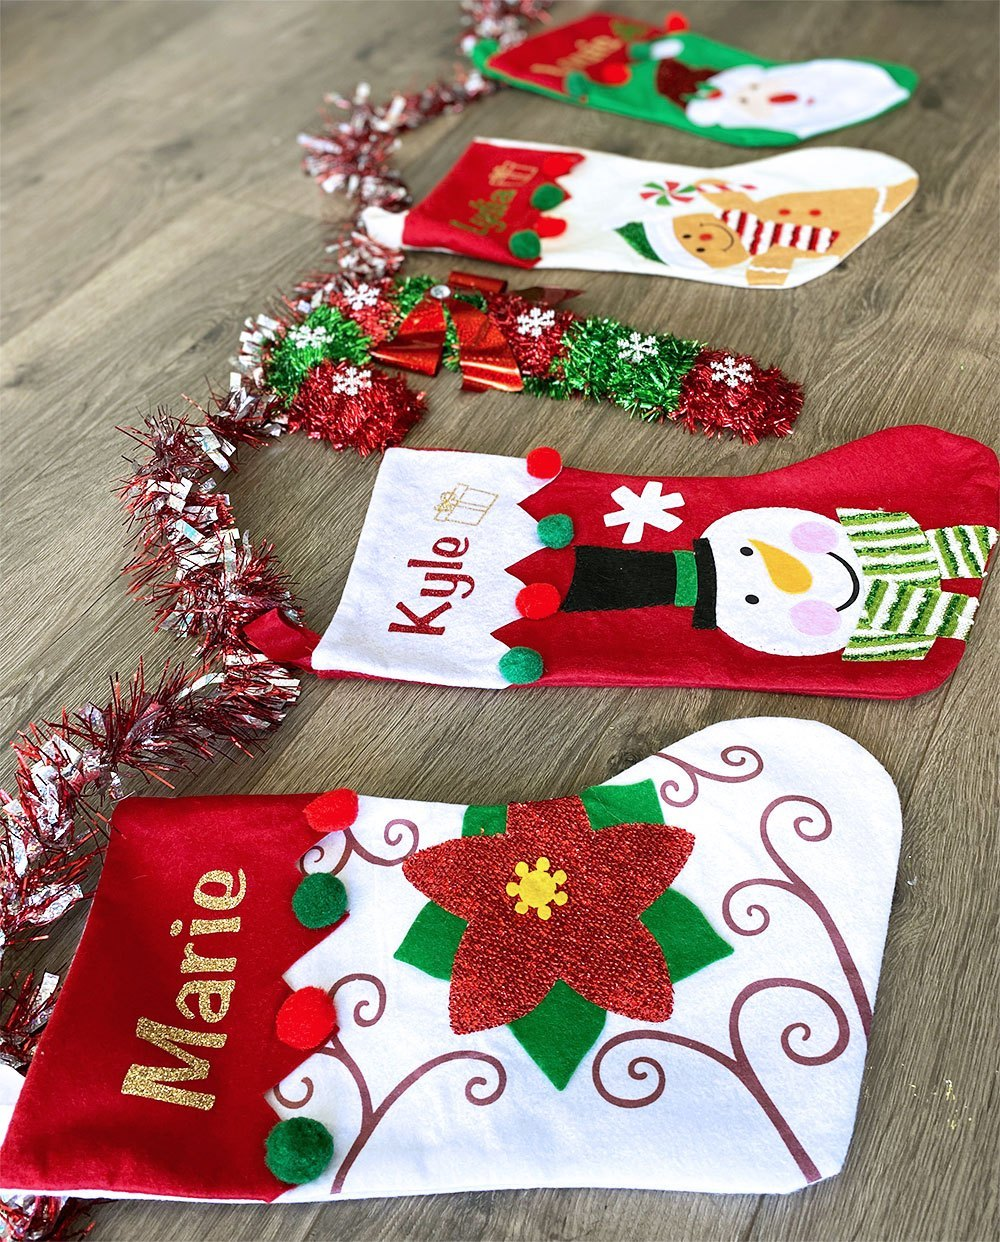 Personalized Christmas stockings made with glitter and the Cricut machine